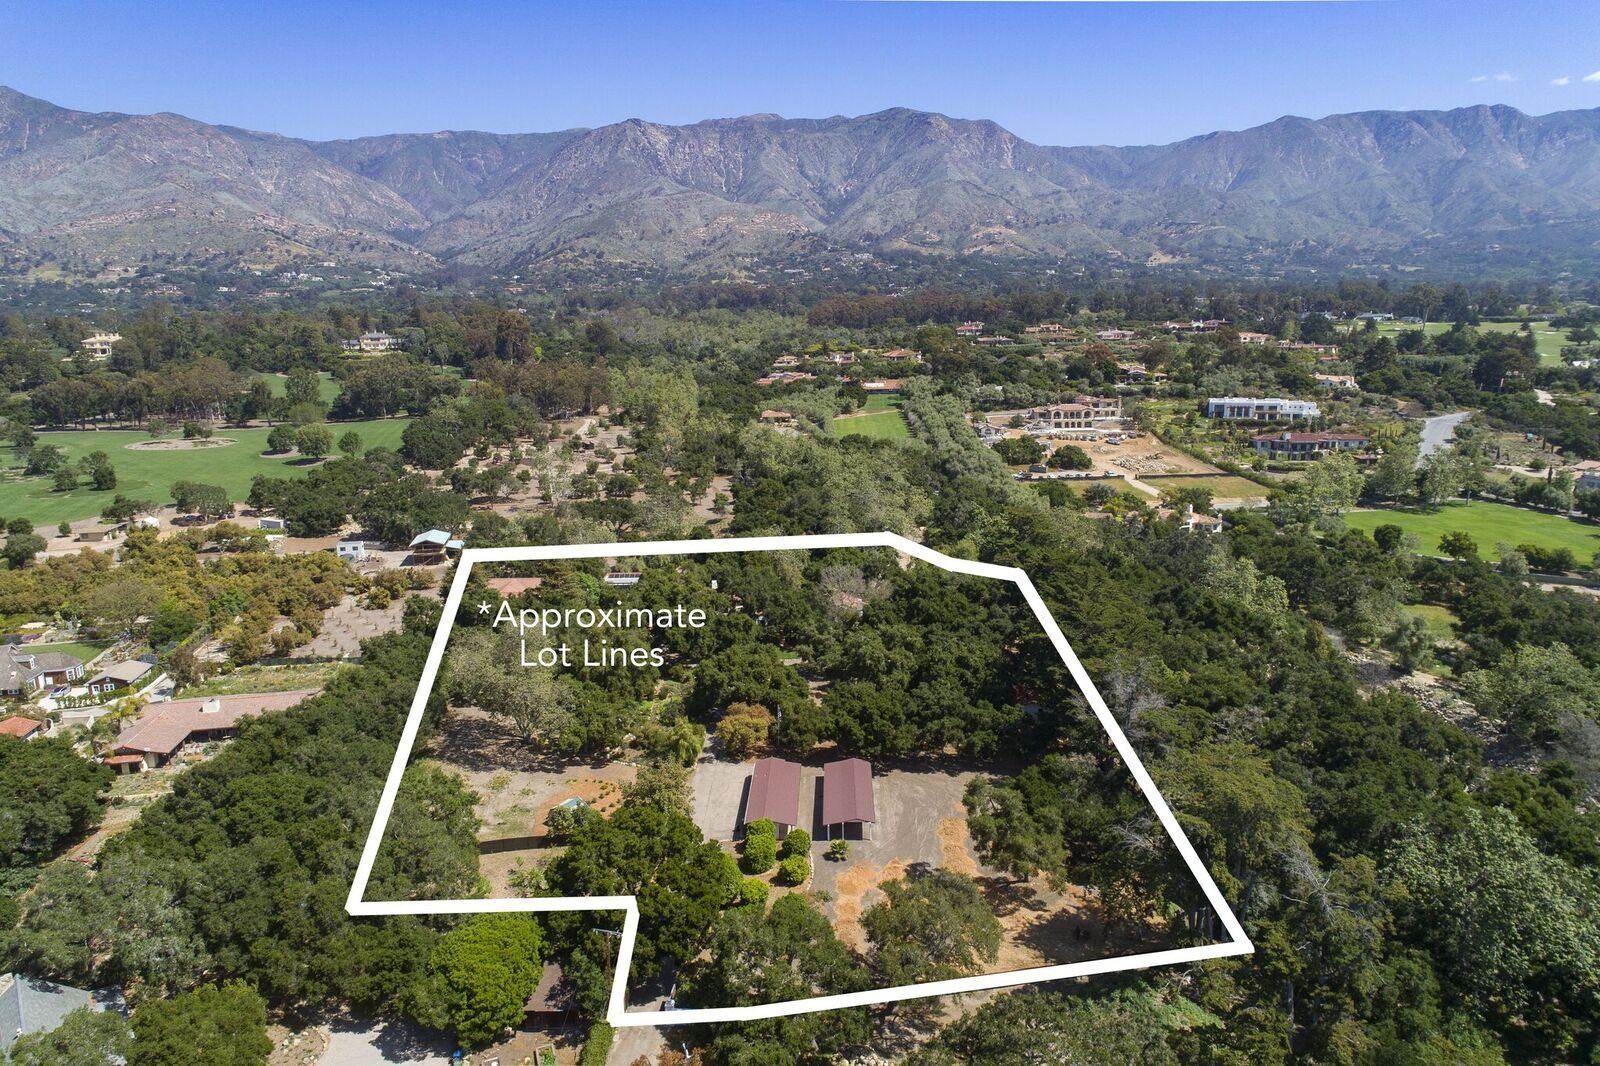 An aerial view of the property showing the house and the nature surrounding it. Images courtesy of Toptenrealestatedeals.com.